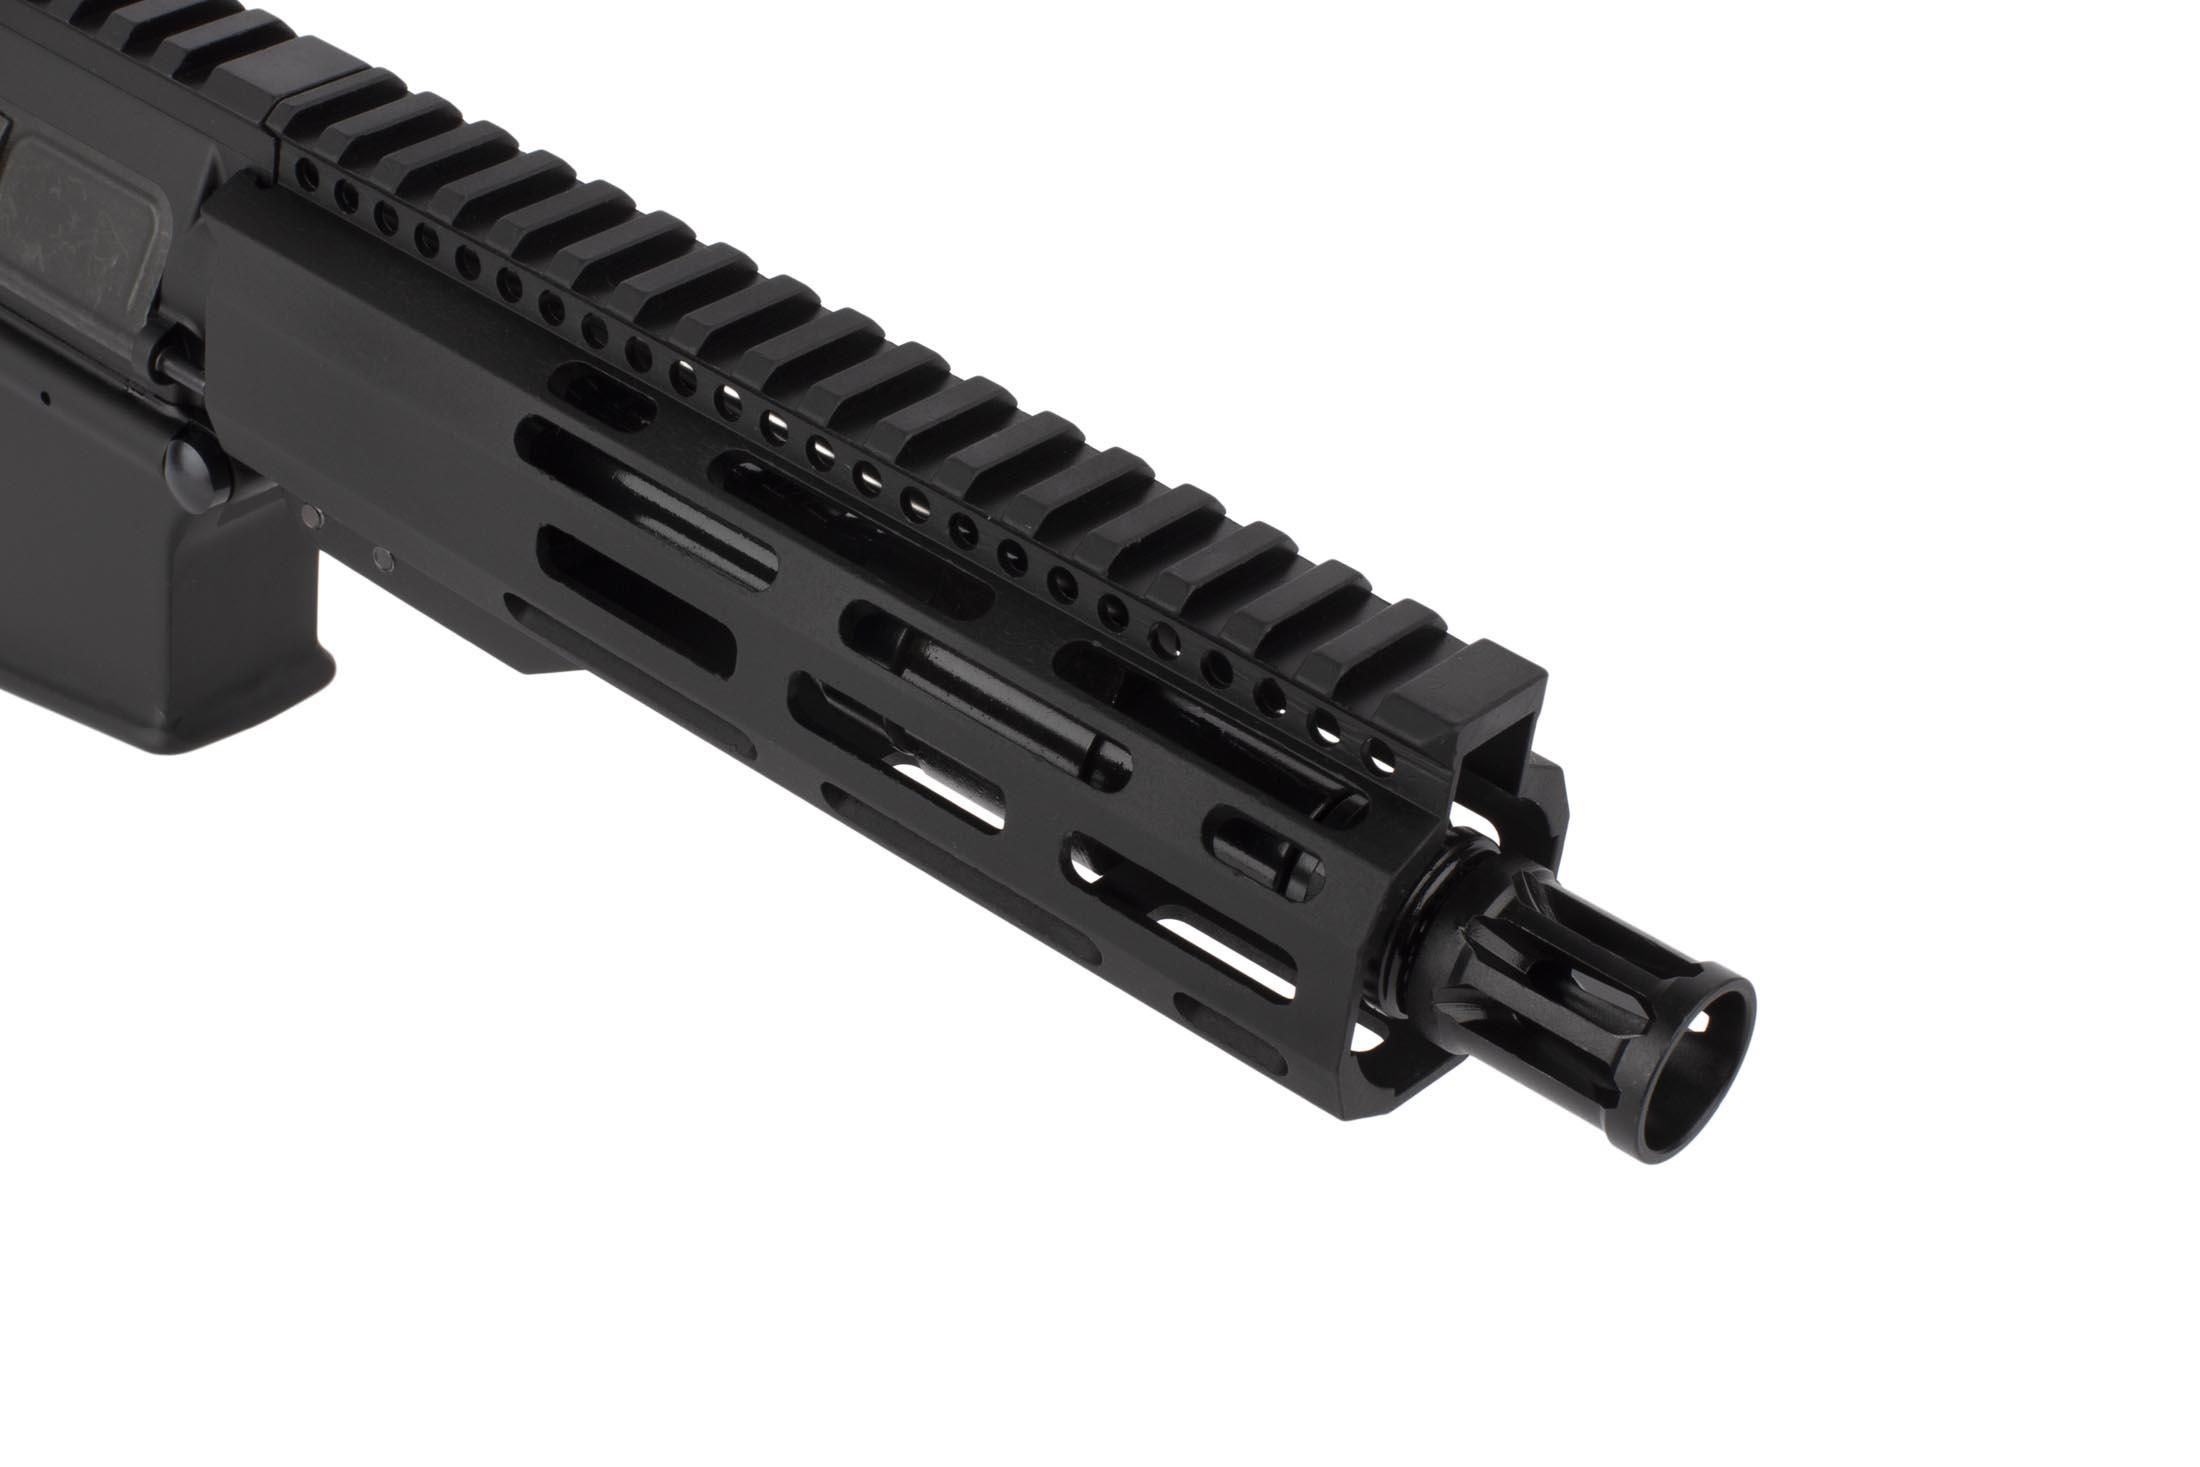 Radical Firearms 5.56 NATO AR pistol with 7.5in barrel is threaded 1/2x28 and topped with a highly effective A2 flash hider